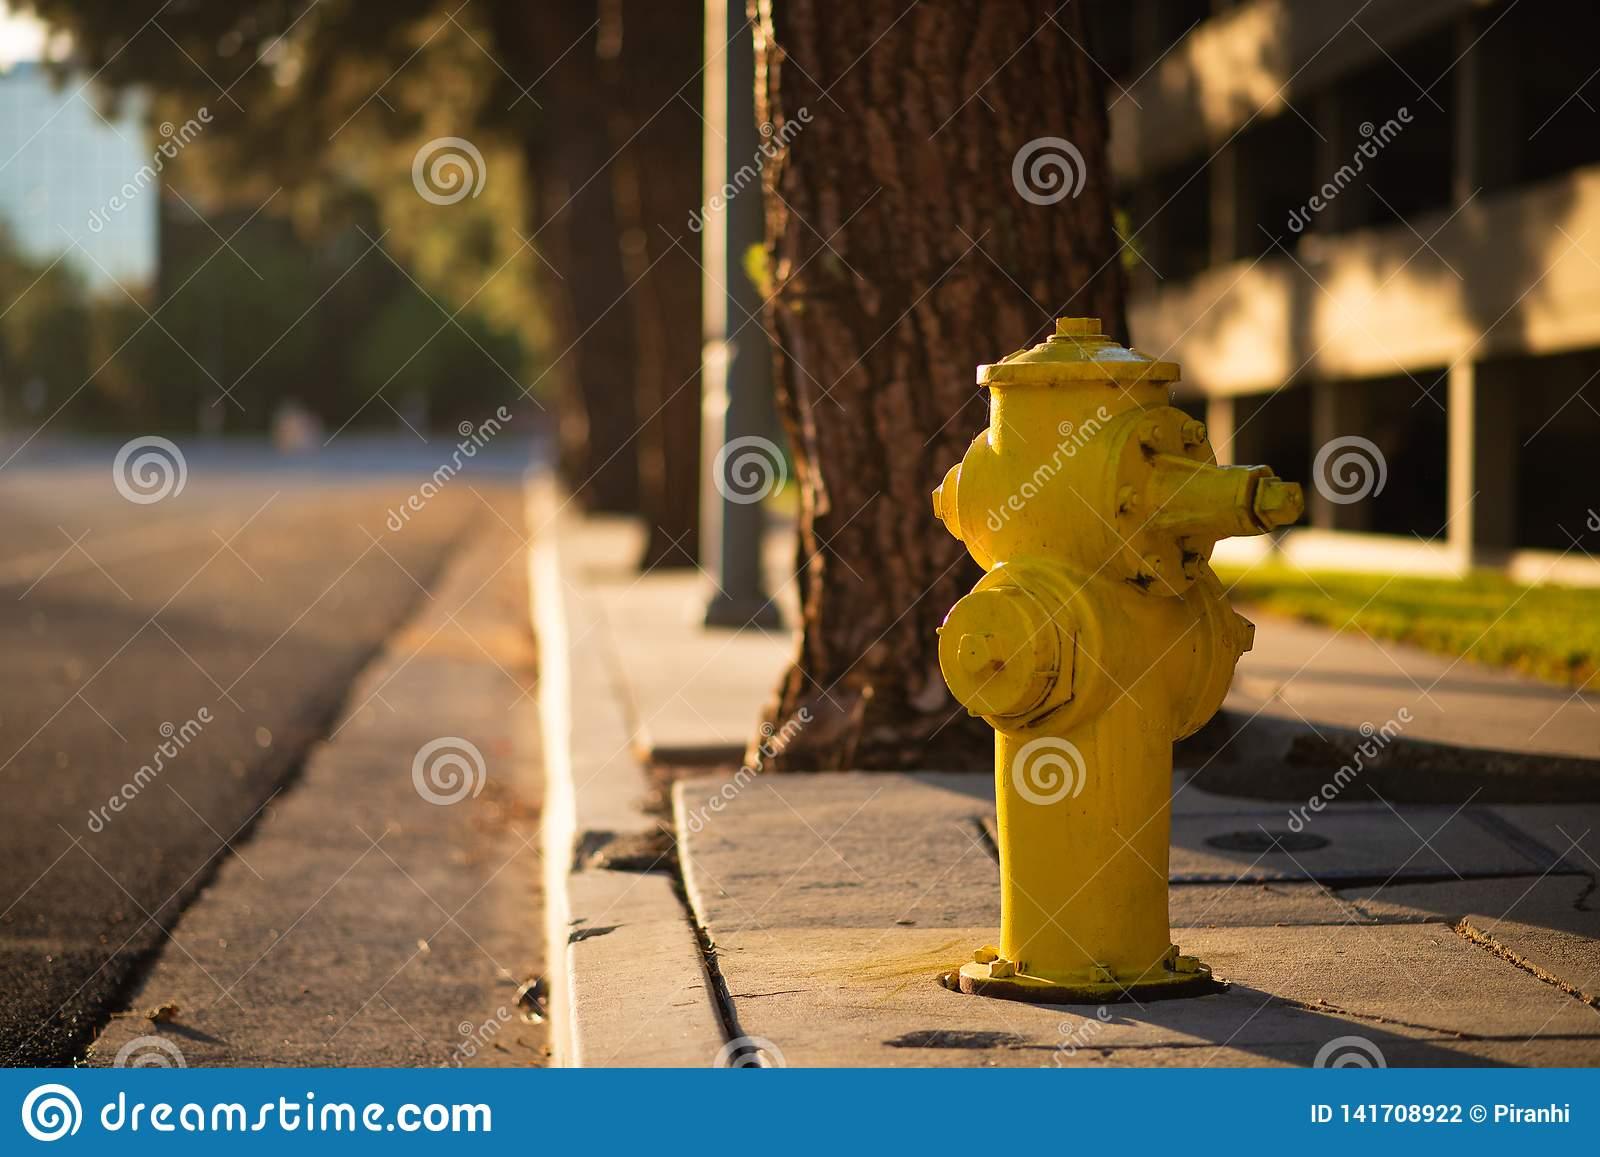 A yellow Hydrant next to the side of a road during sunset in LA, America